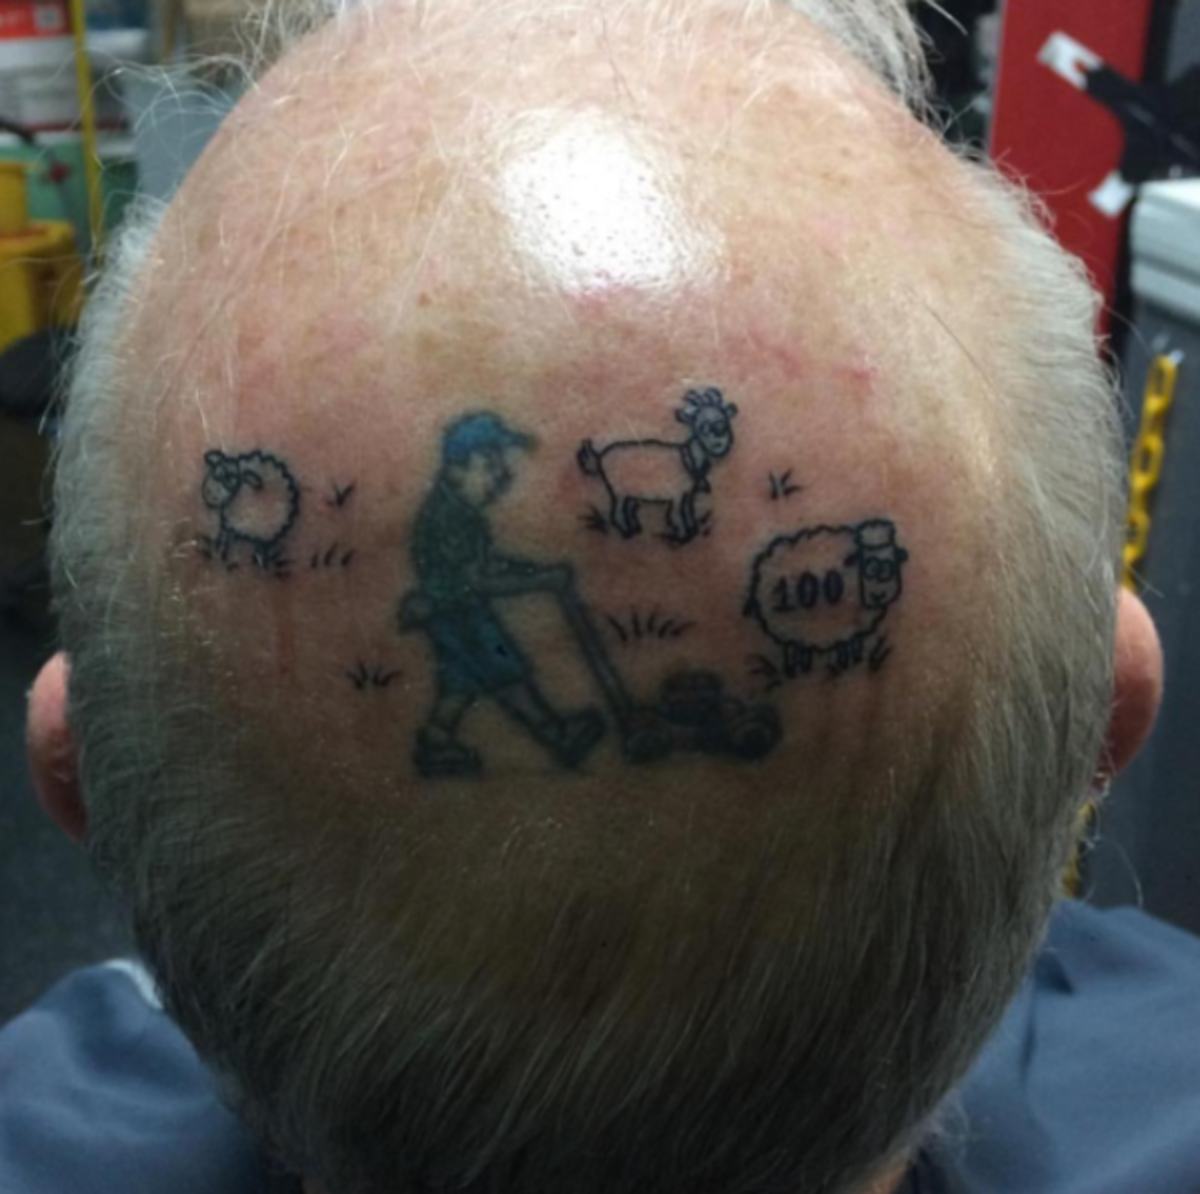 bald-man-with-tattoo-on-his-head